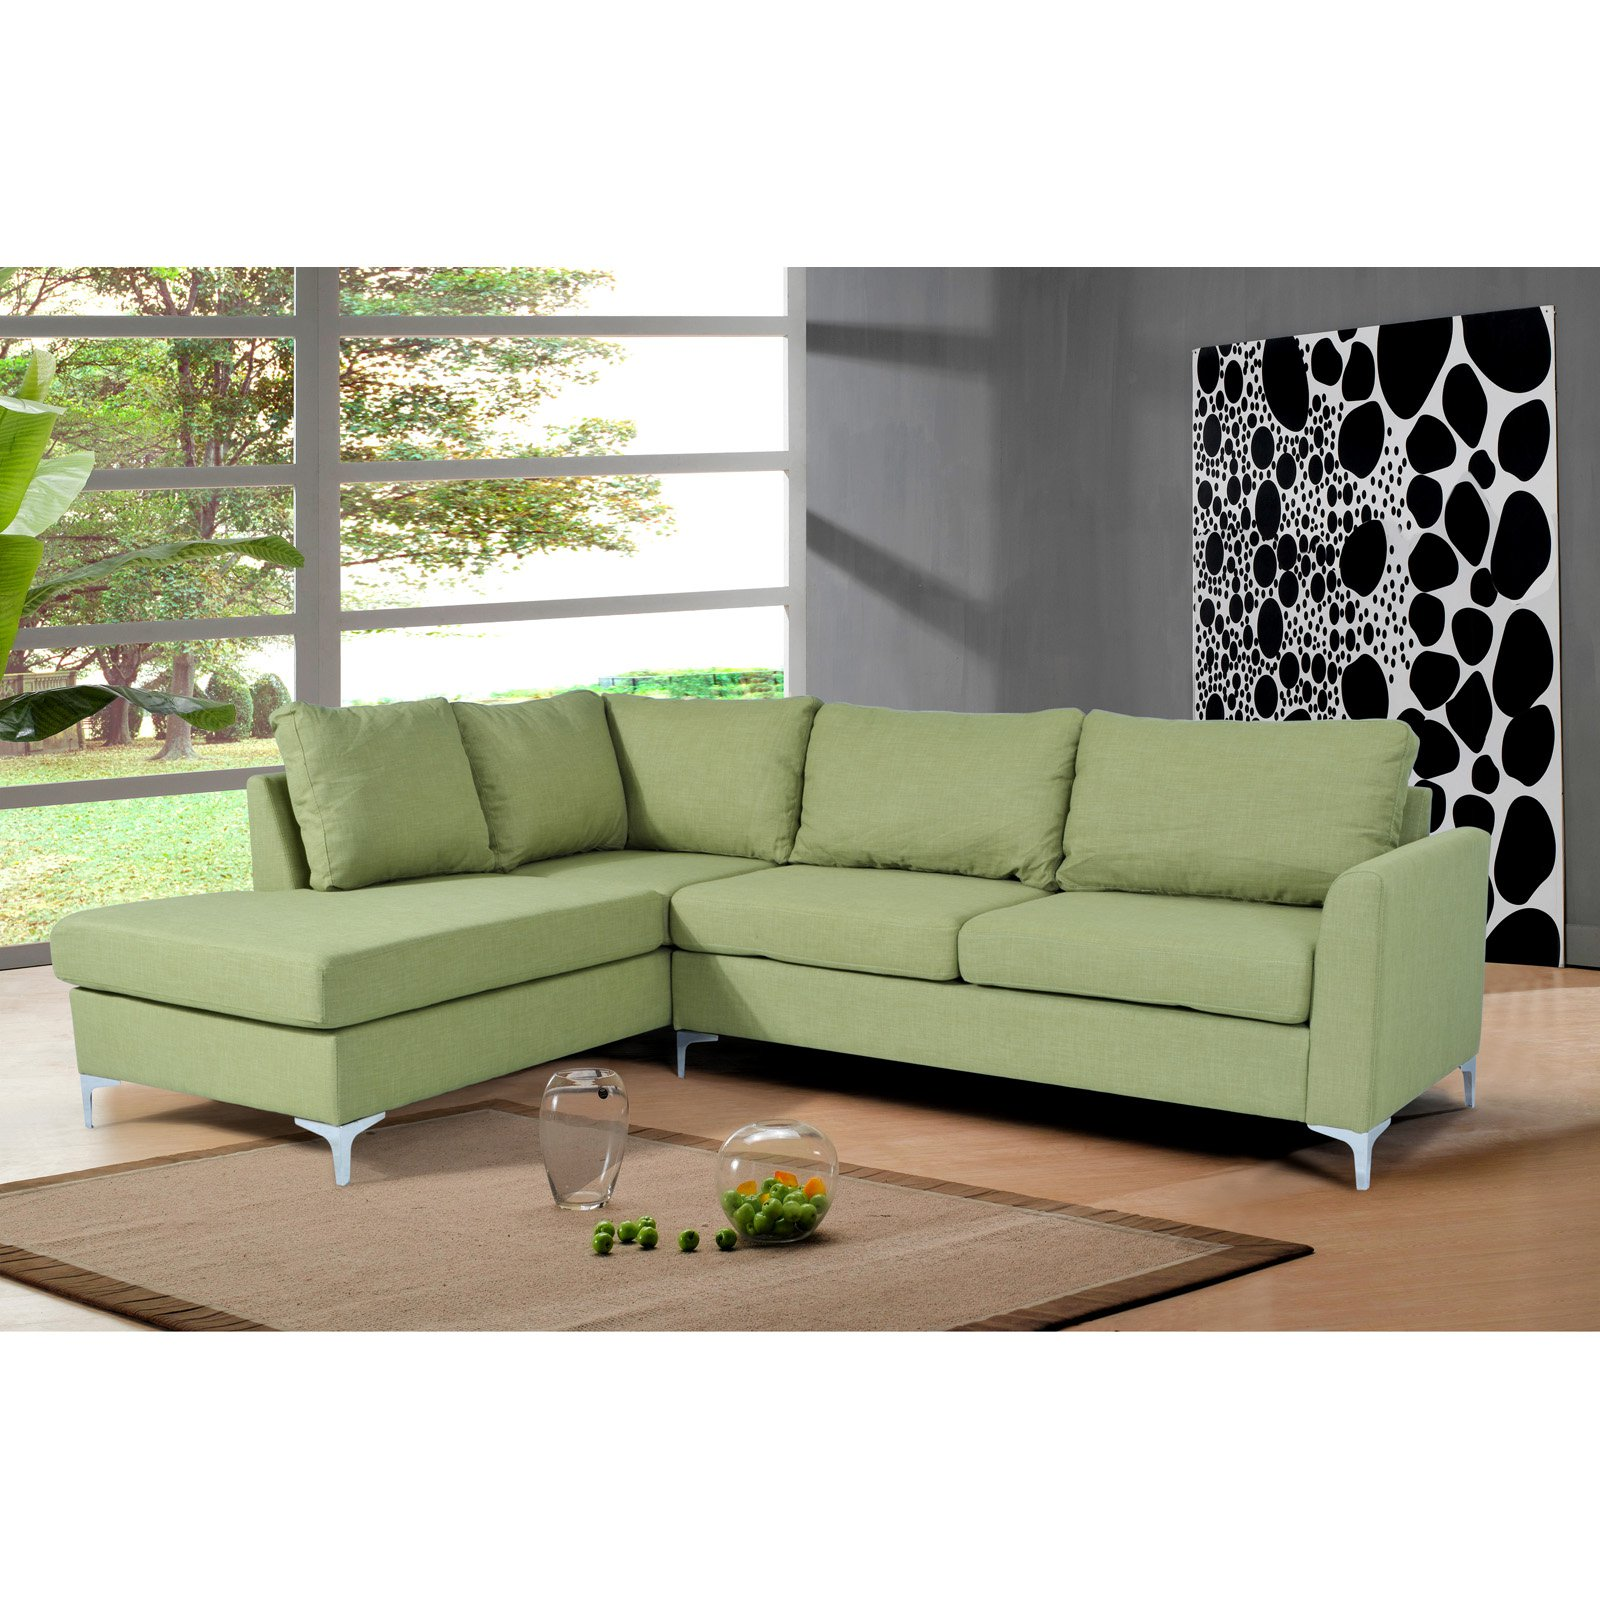 NH Designs Reversible Linen Sectional Sofa with Chaise